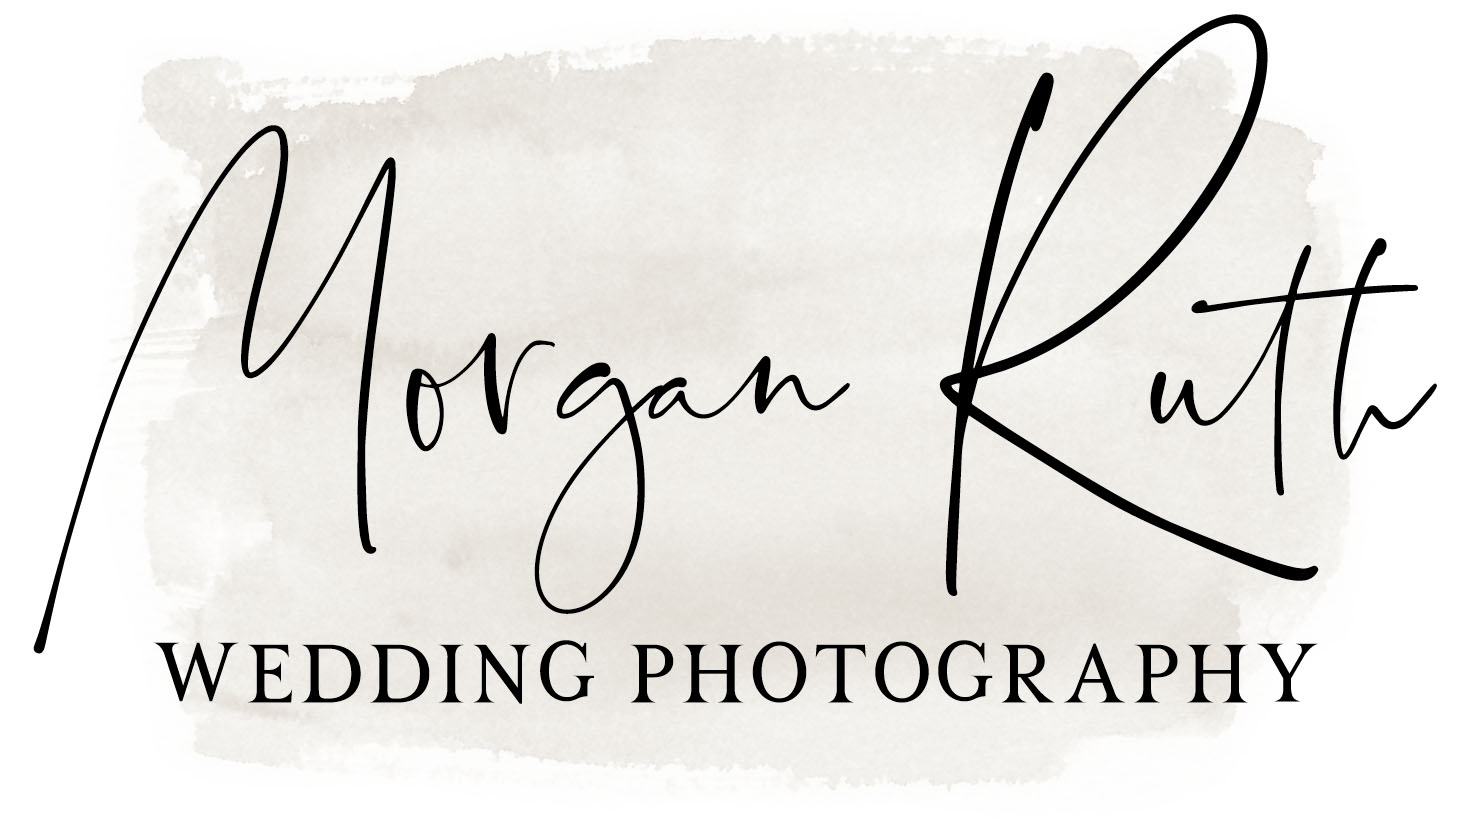 Fort Wayne & Indianapolis, IN Wedding + Portrait Photographer